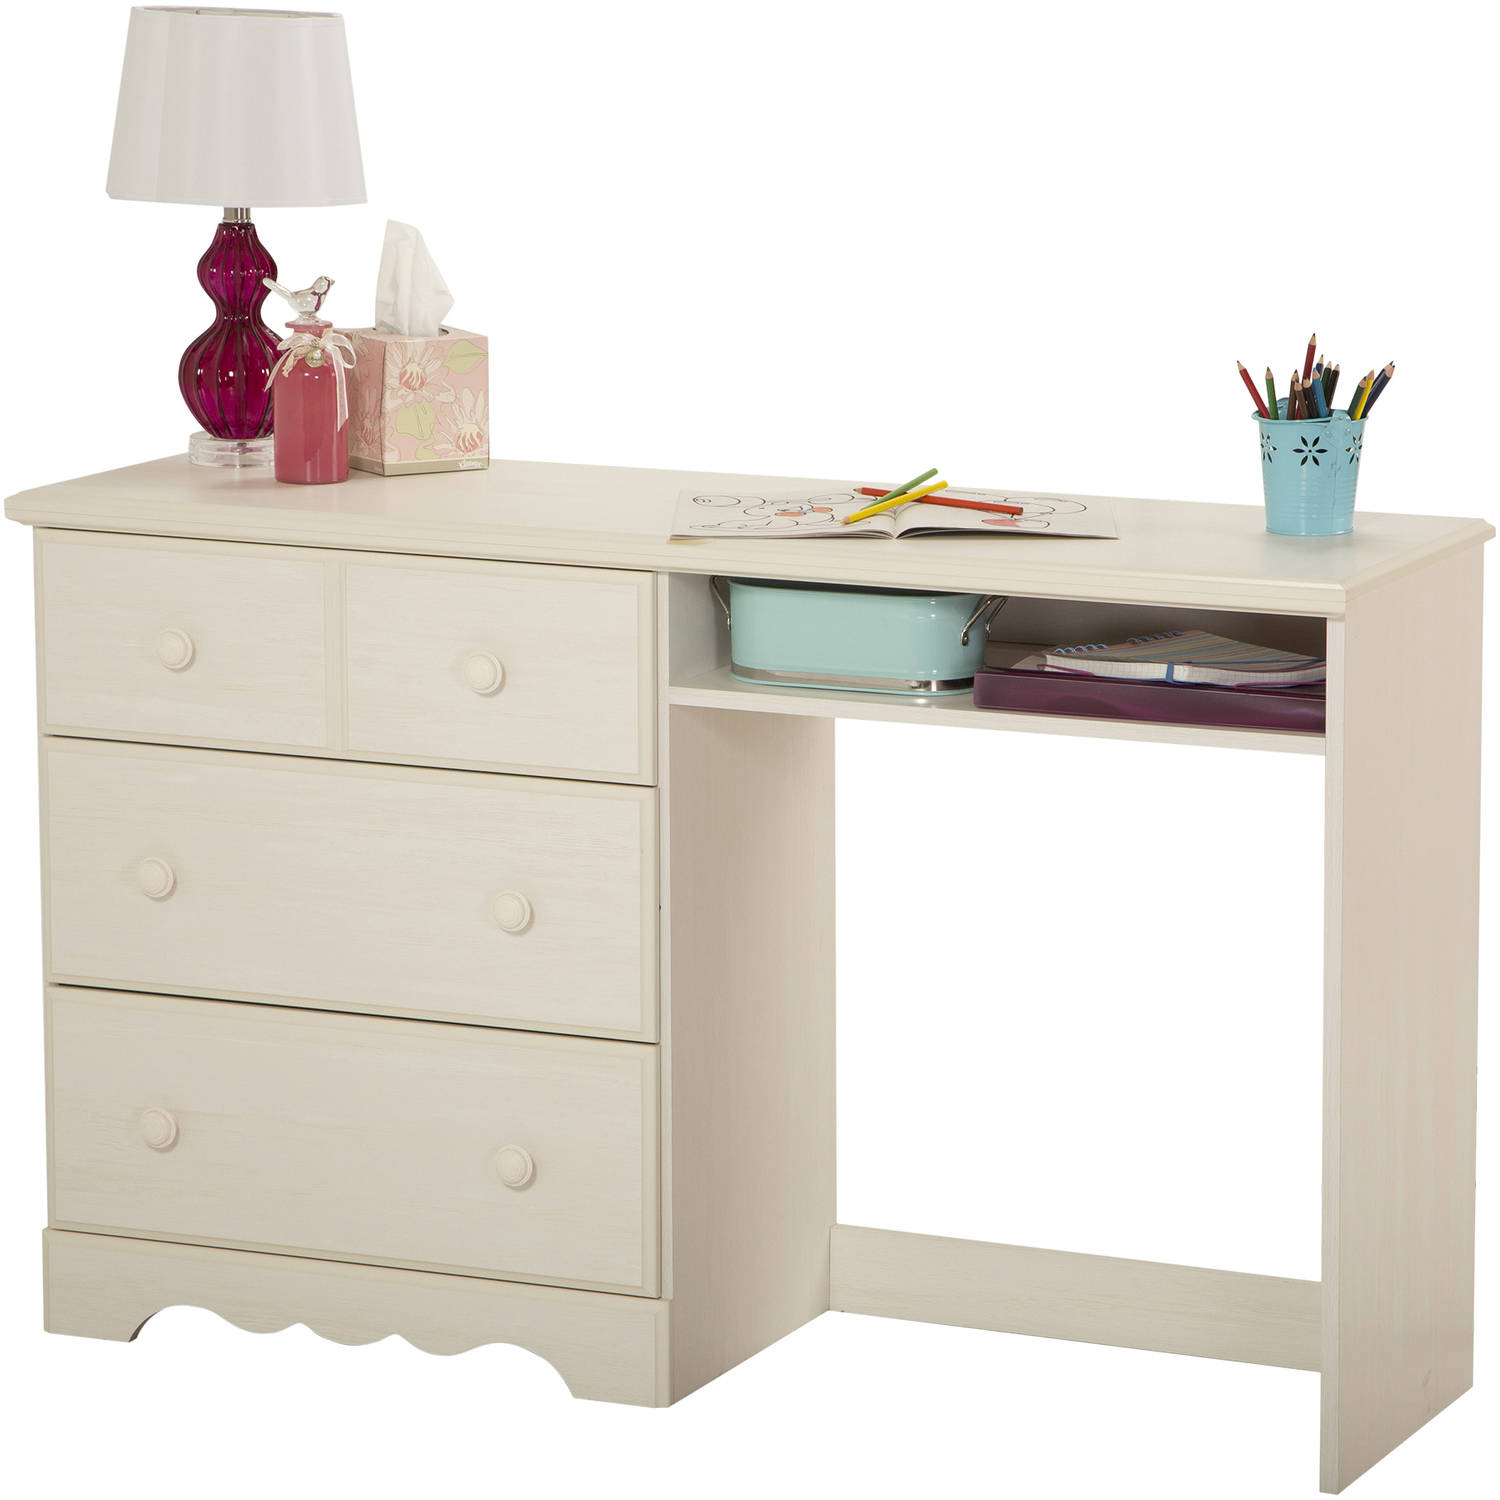 South Shore Summer Breeze Kids Desk with 3 Drawers, White Wash